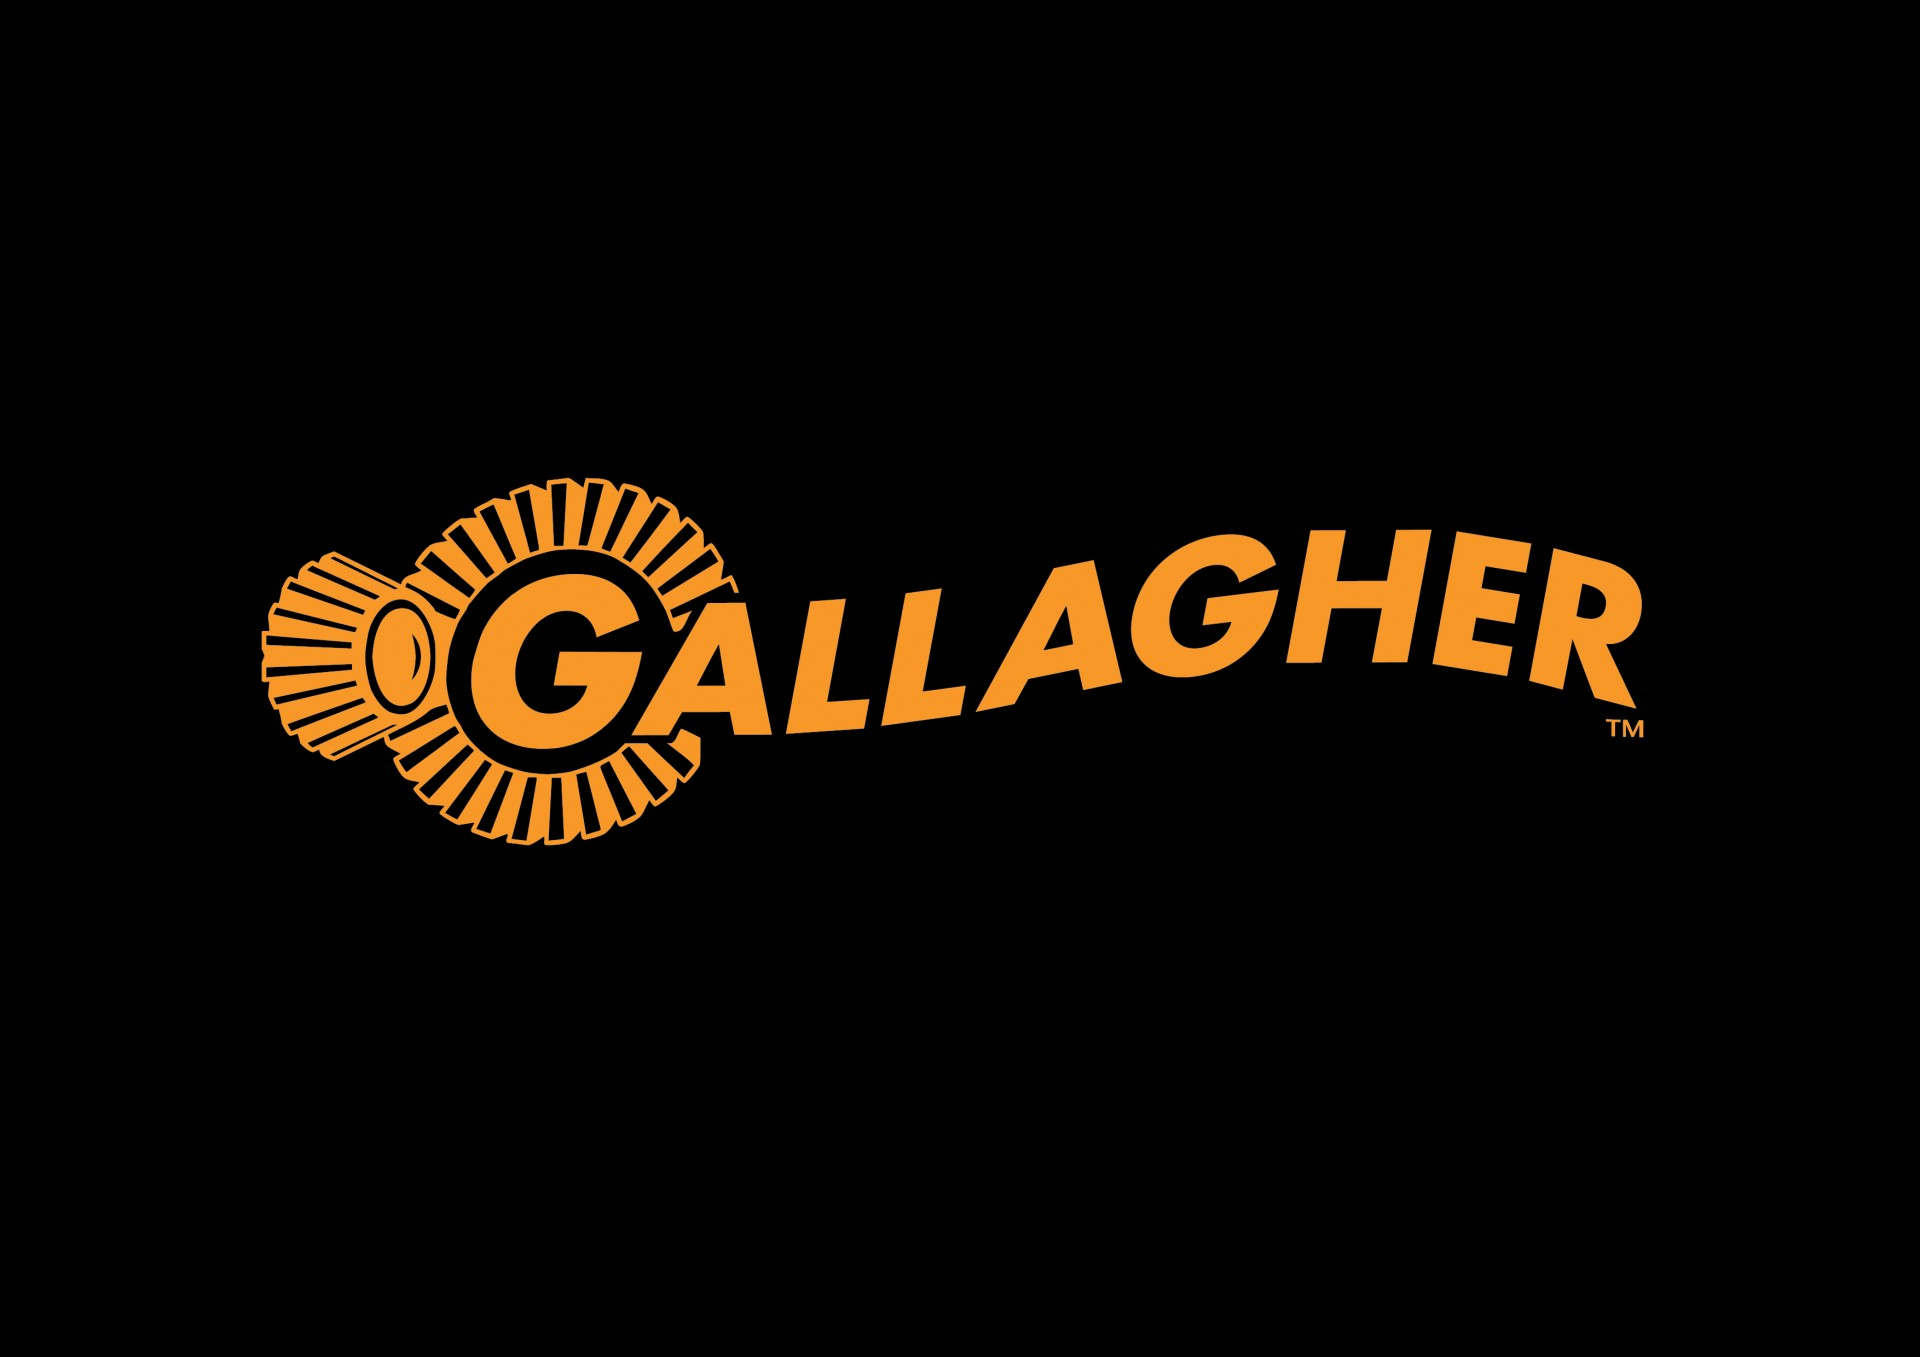 Gallagher updates current innovative product and mobile app